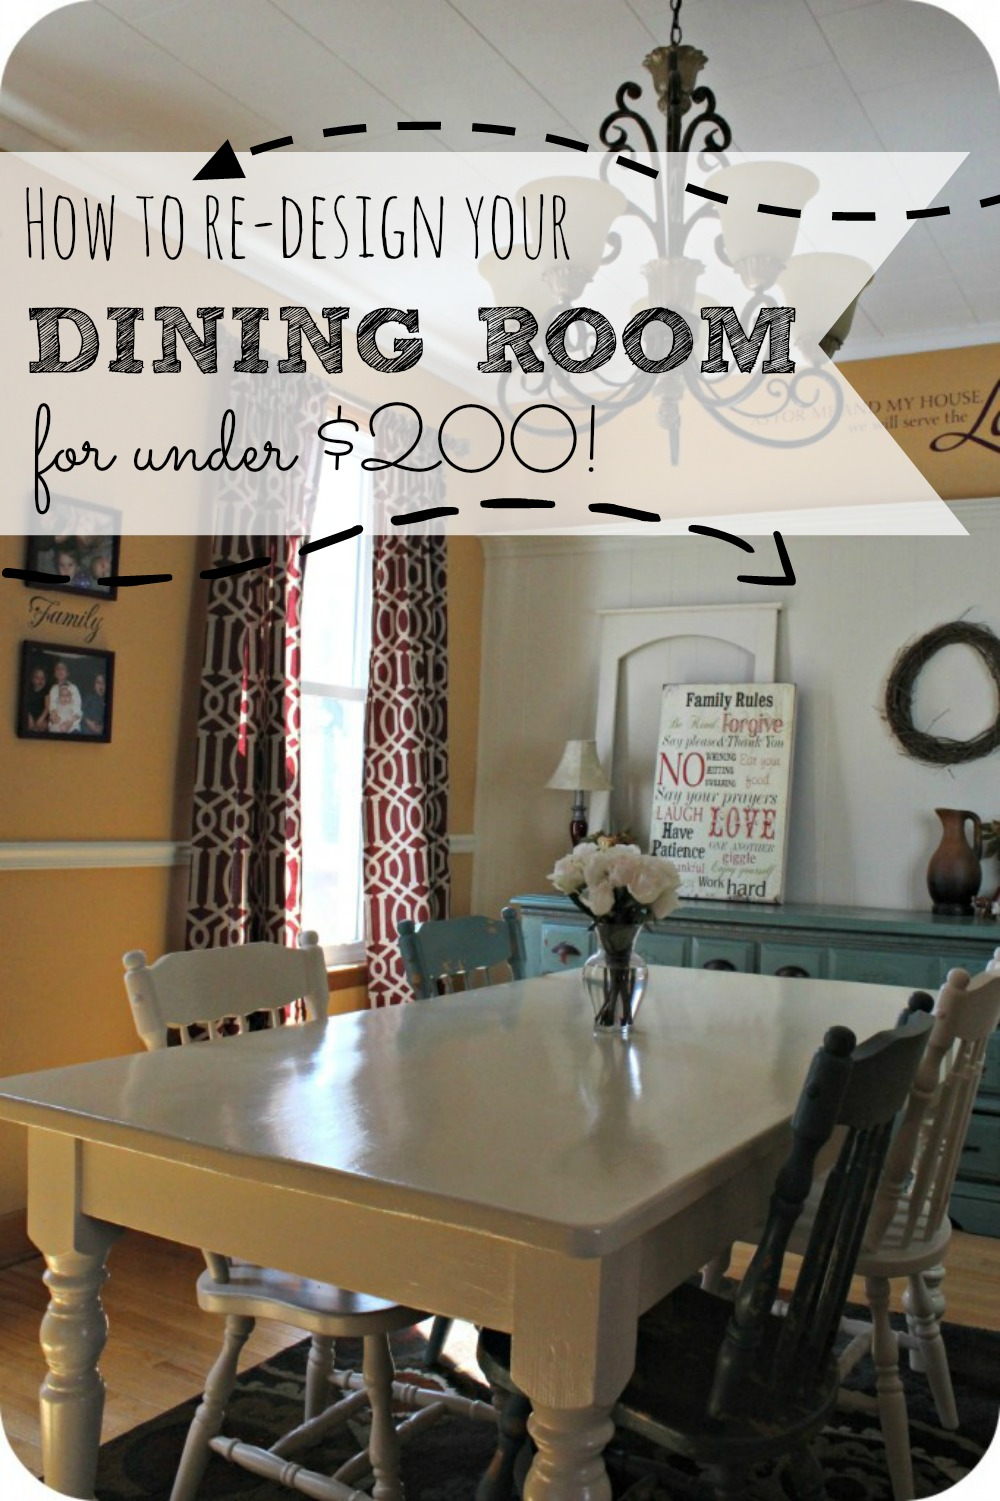 Are You Looking For Ideas On How To Re Decorate Your Dining Room For Less